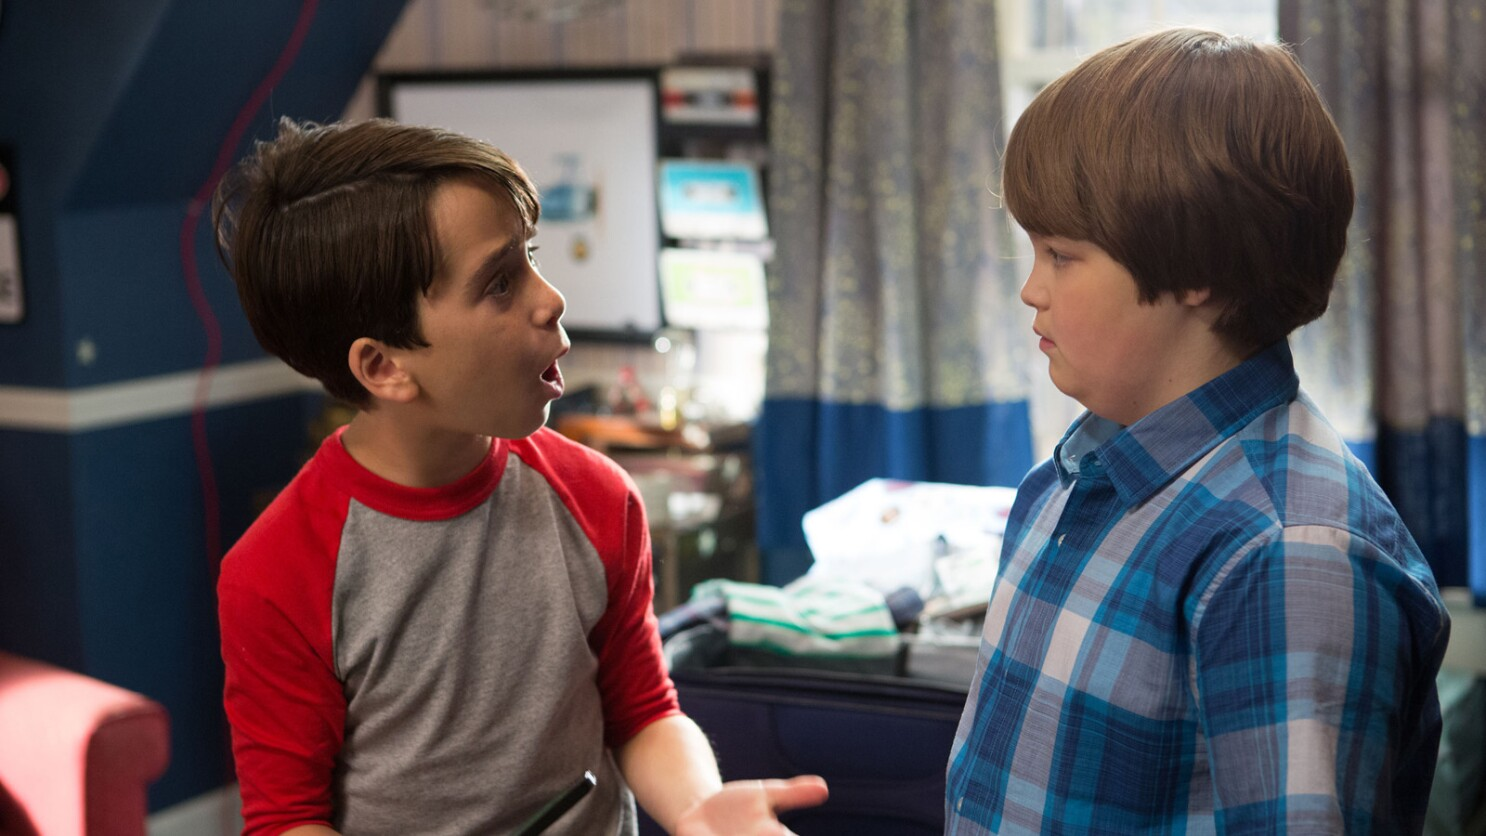 Diary Of A Wimpy Kid The Long Haul Shares The Horrors Of Family Vacations Minus The Fun Los Angeles Times